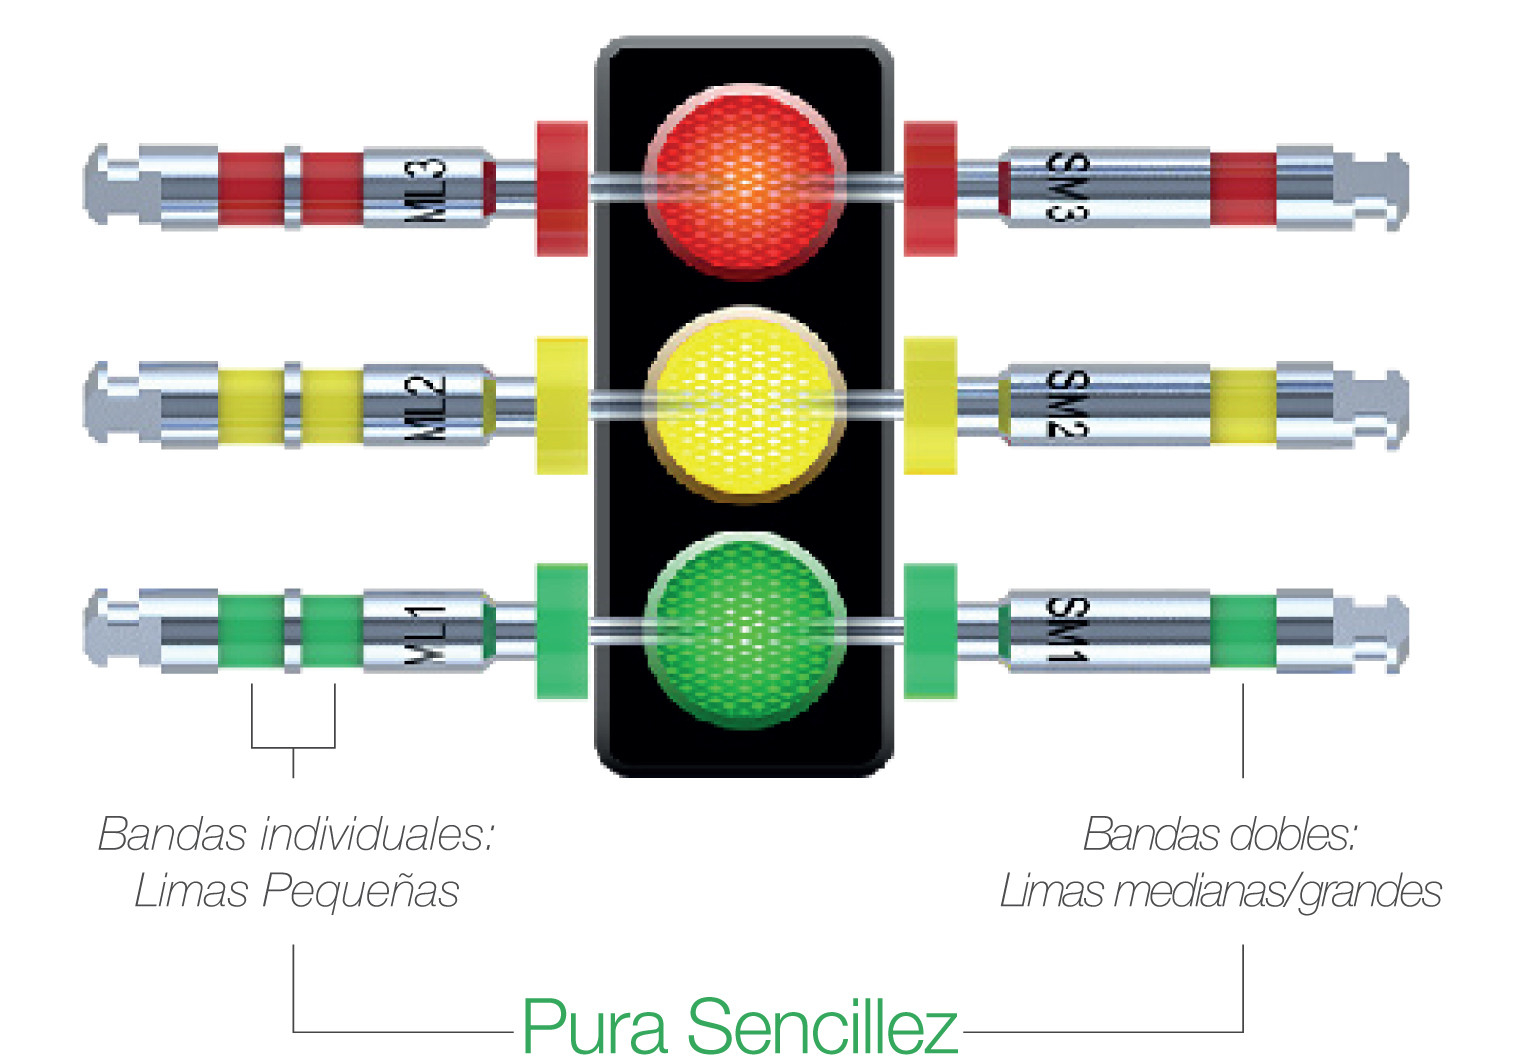 ES_Traffic-light